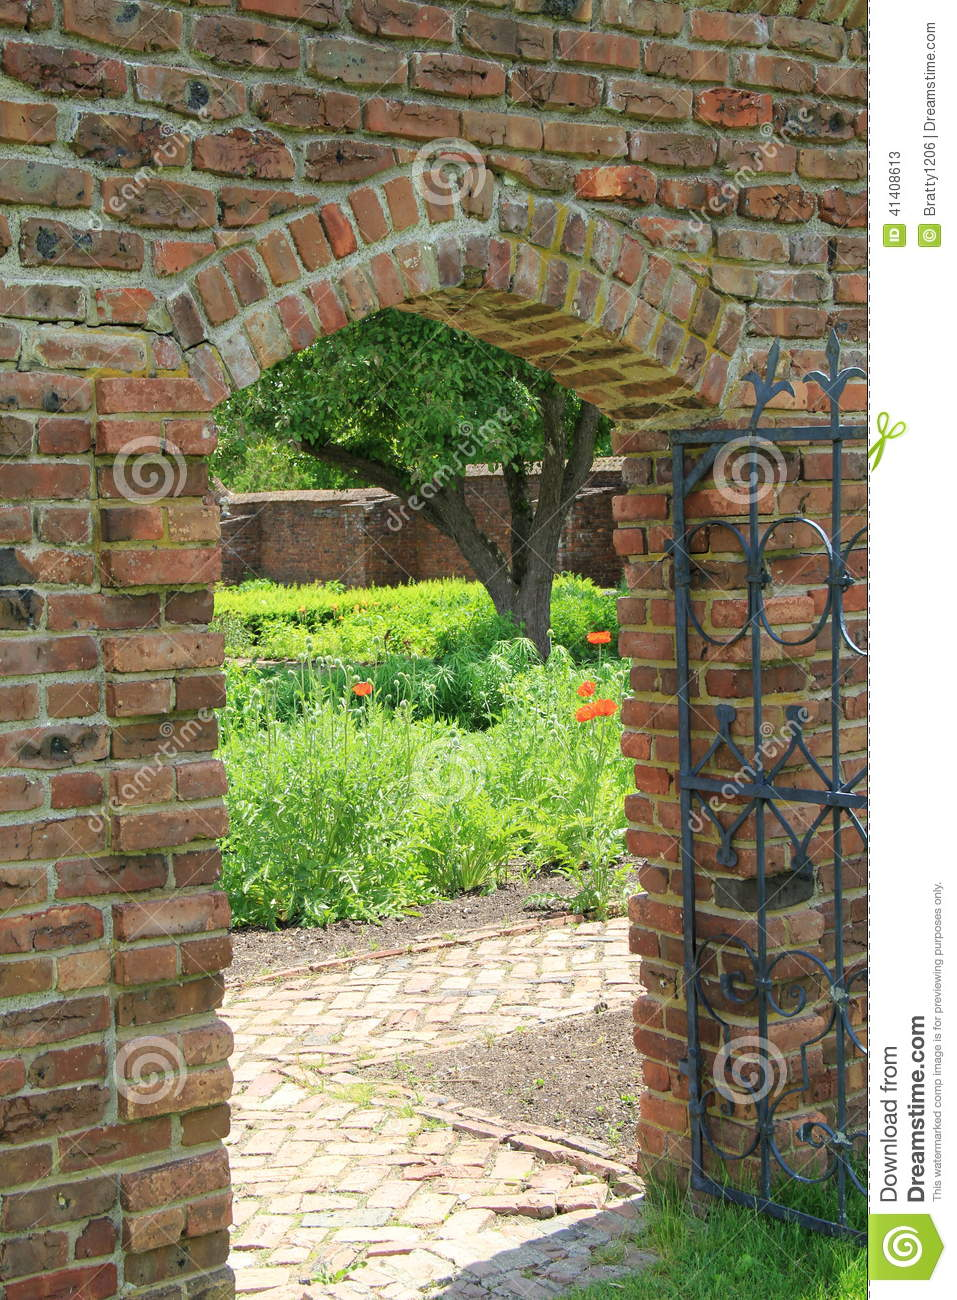 Archway in brick wall stock photo image 41408613 for Brick garden wall designs homes